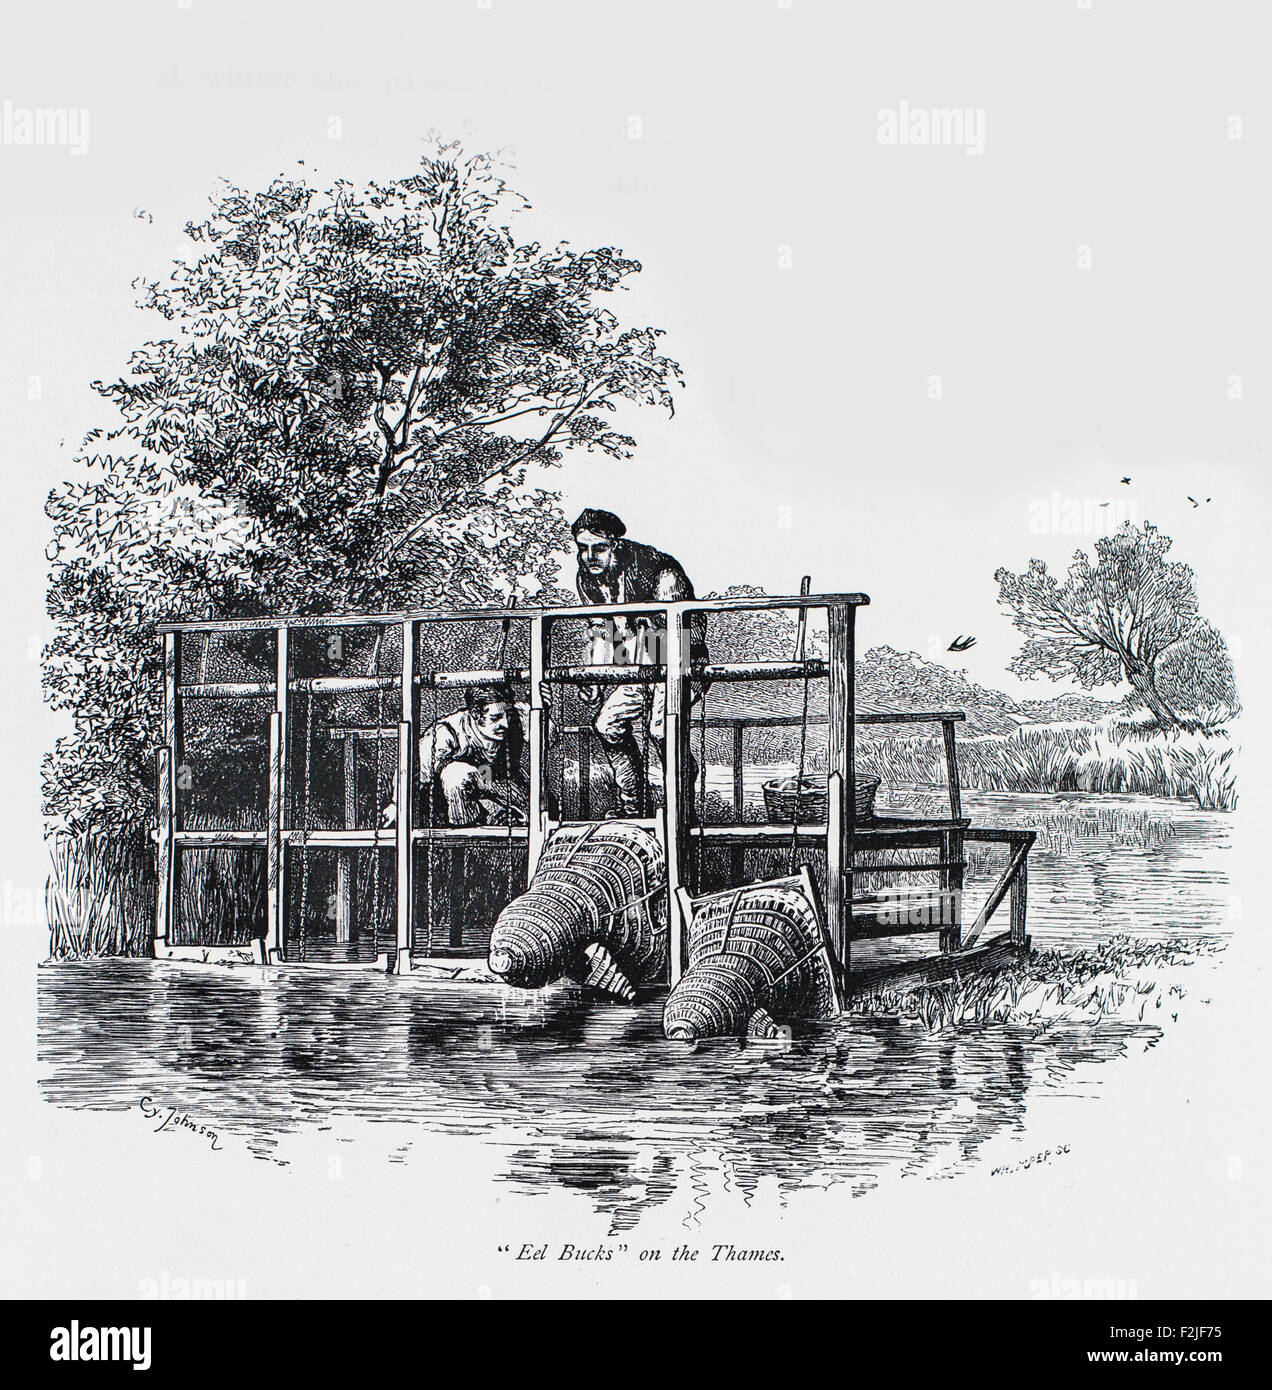 Ed Bucks on the Thames - Bells of Ousley  Illustration from 'The British isles - Cassell Petter & Galpin Part 6 Stock Photo